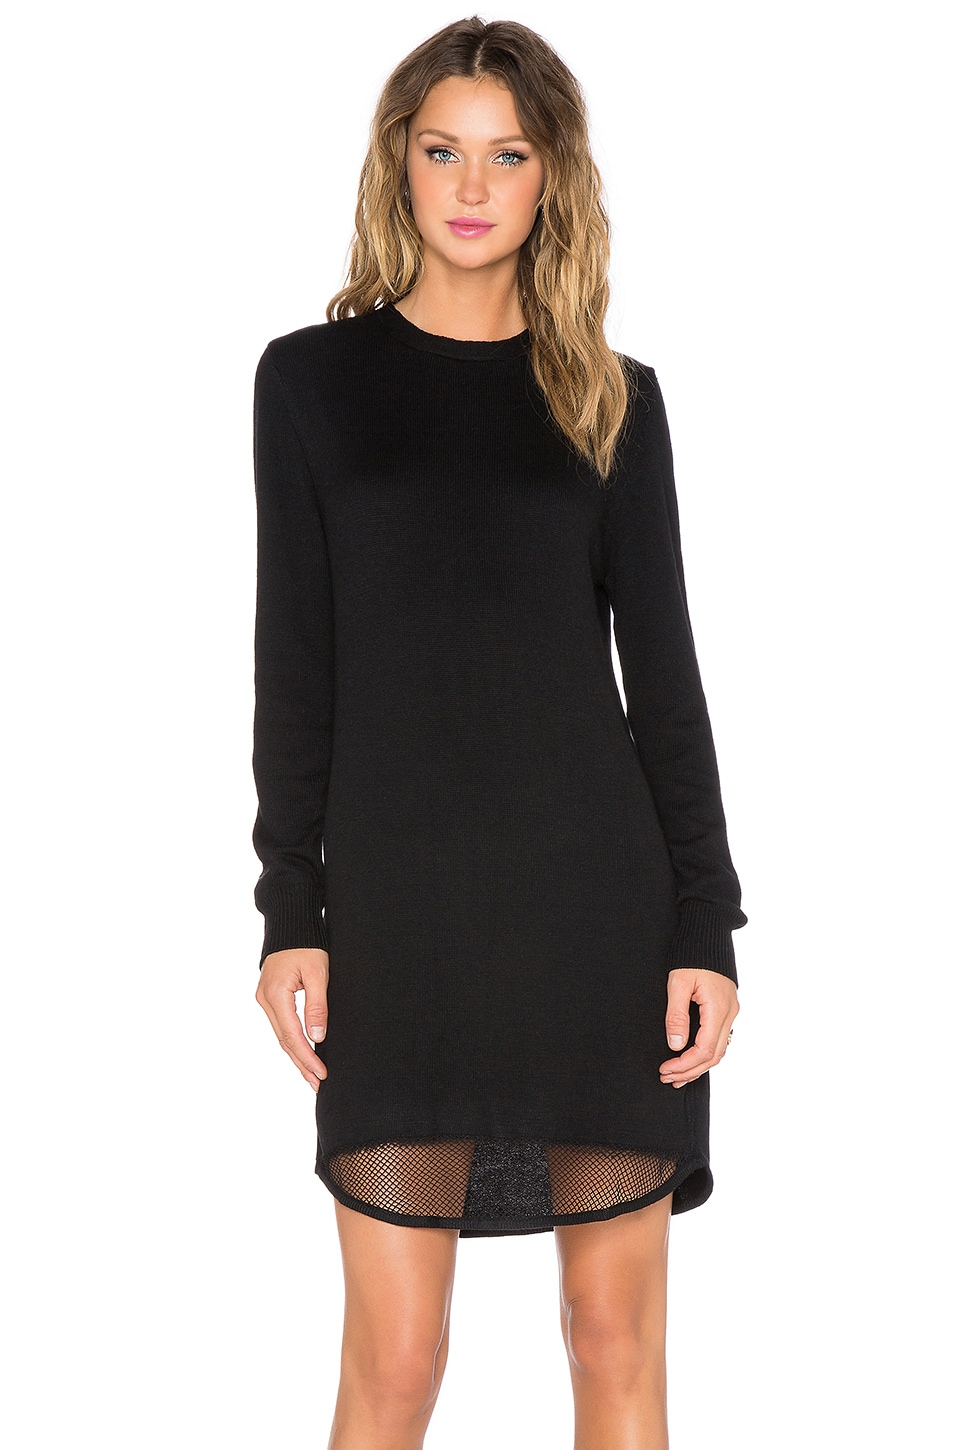 BEACH RIOT Mamacita Sweater Dress in Black